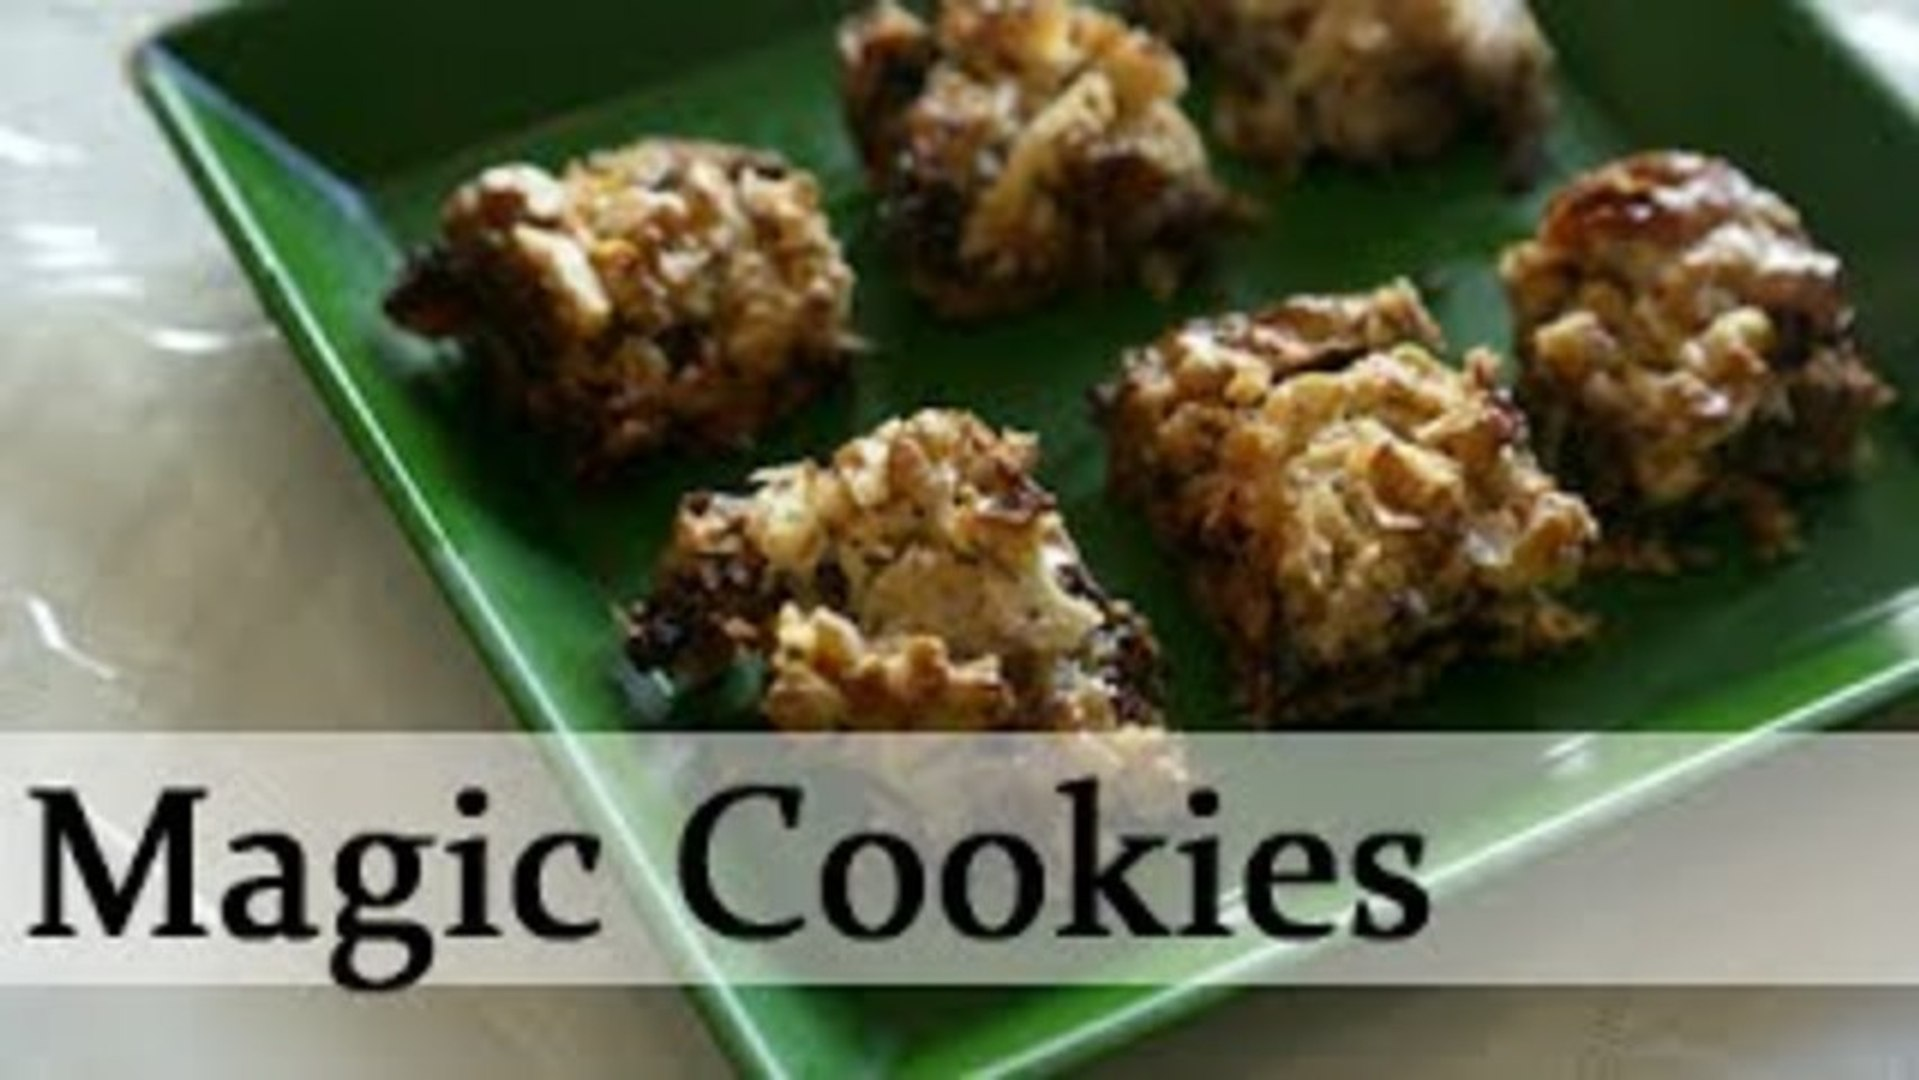 Magic Cookies - Sweet Cookies - Anytime Anywhere Light Snacks Recipe By Annuradha Toshniwal [HD]